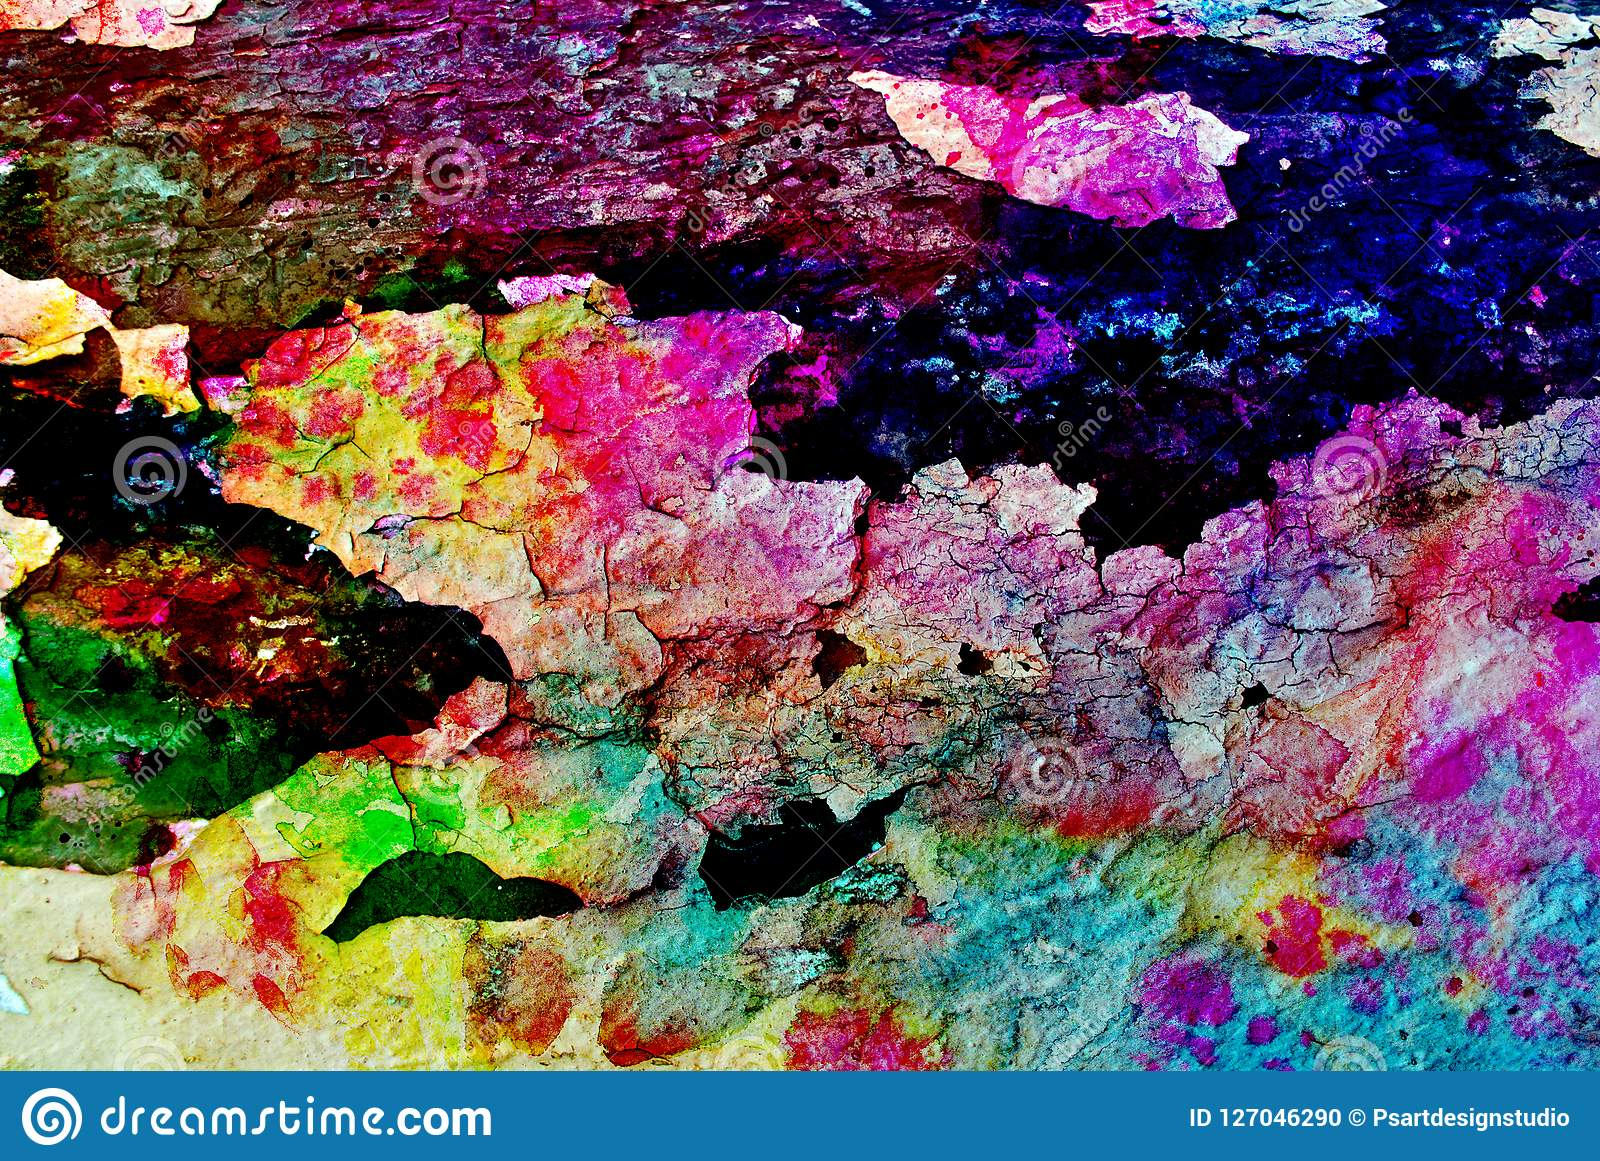 Mixed media artwork, abstract colorful artistic painted layer in blue, green, yellow, purple color palette on grunge black cracks